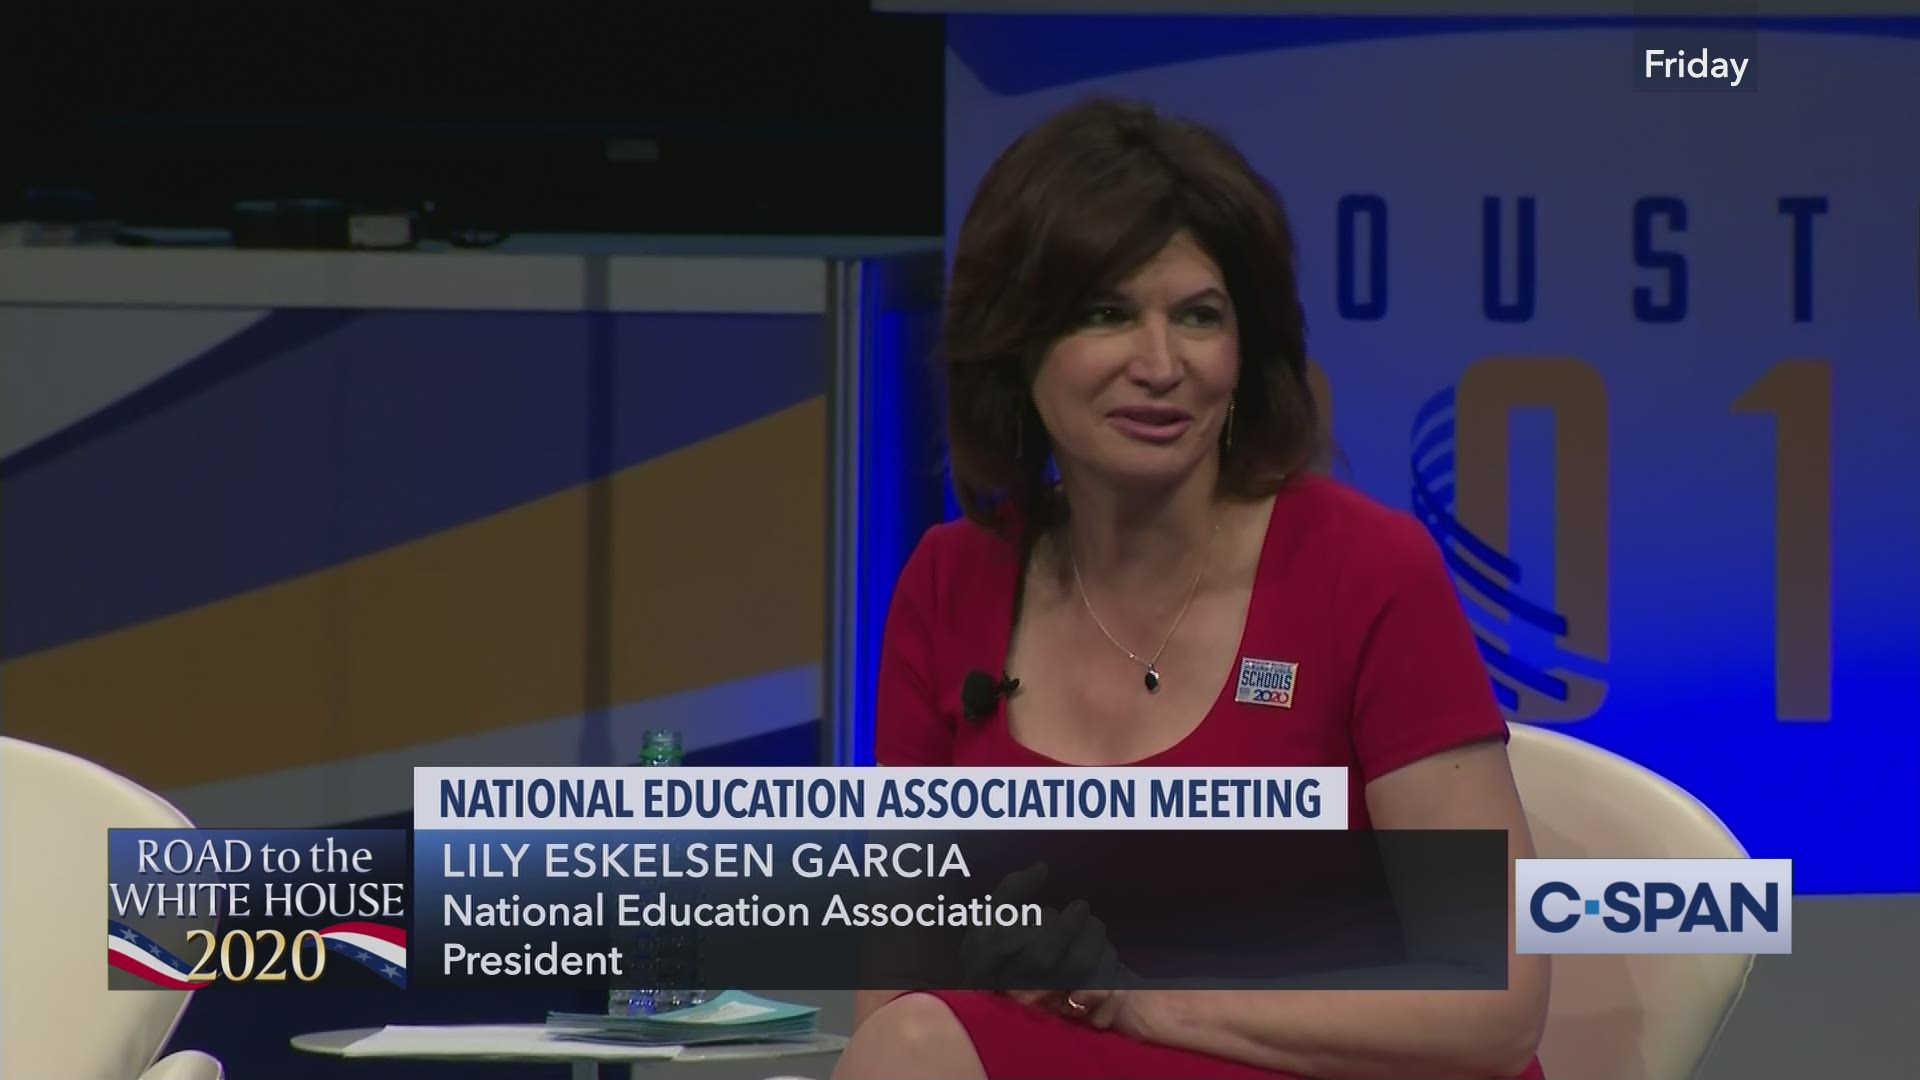 Candid Hd First Day Of School democratic presidential candidates on education issues